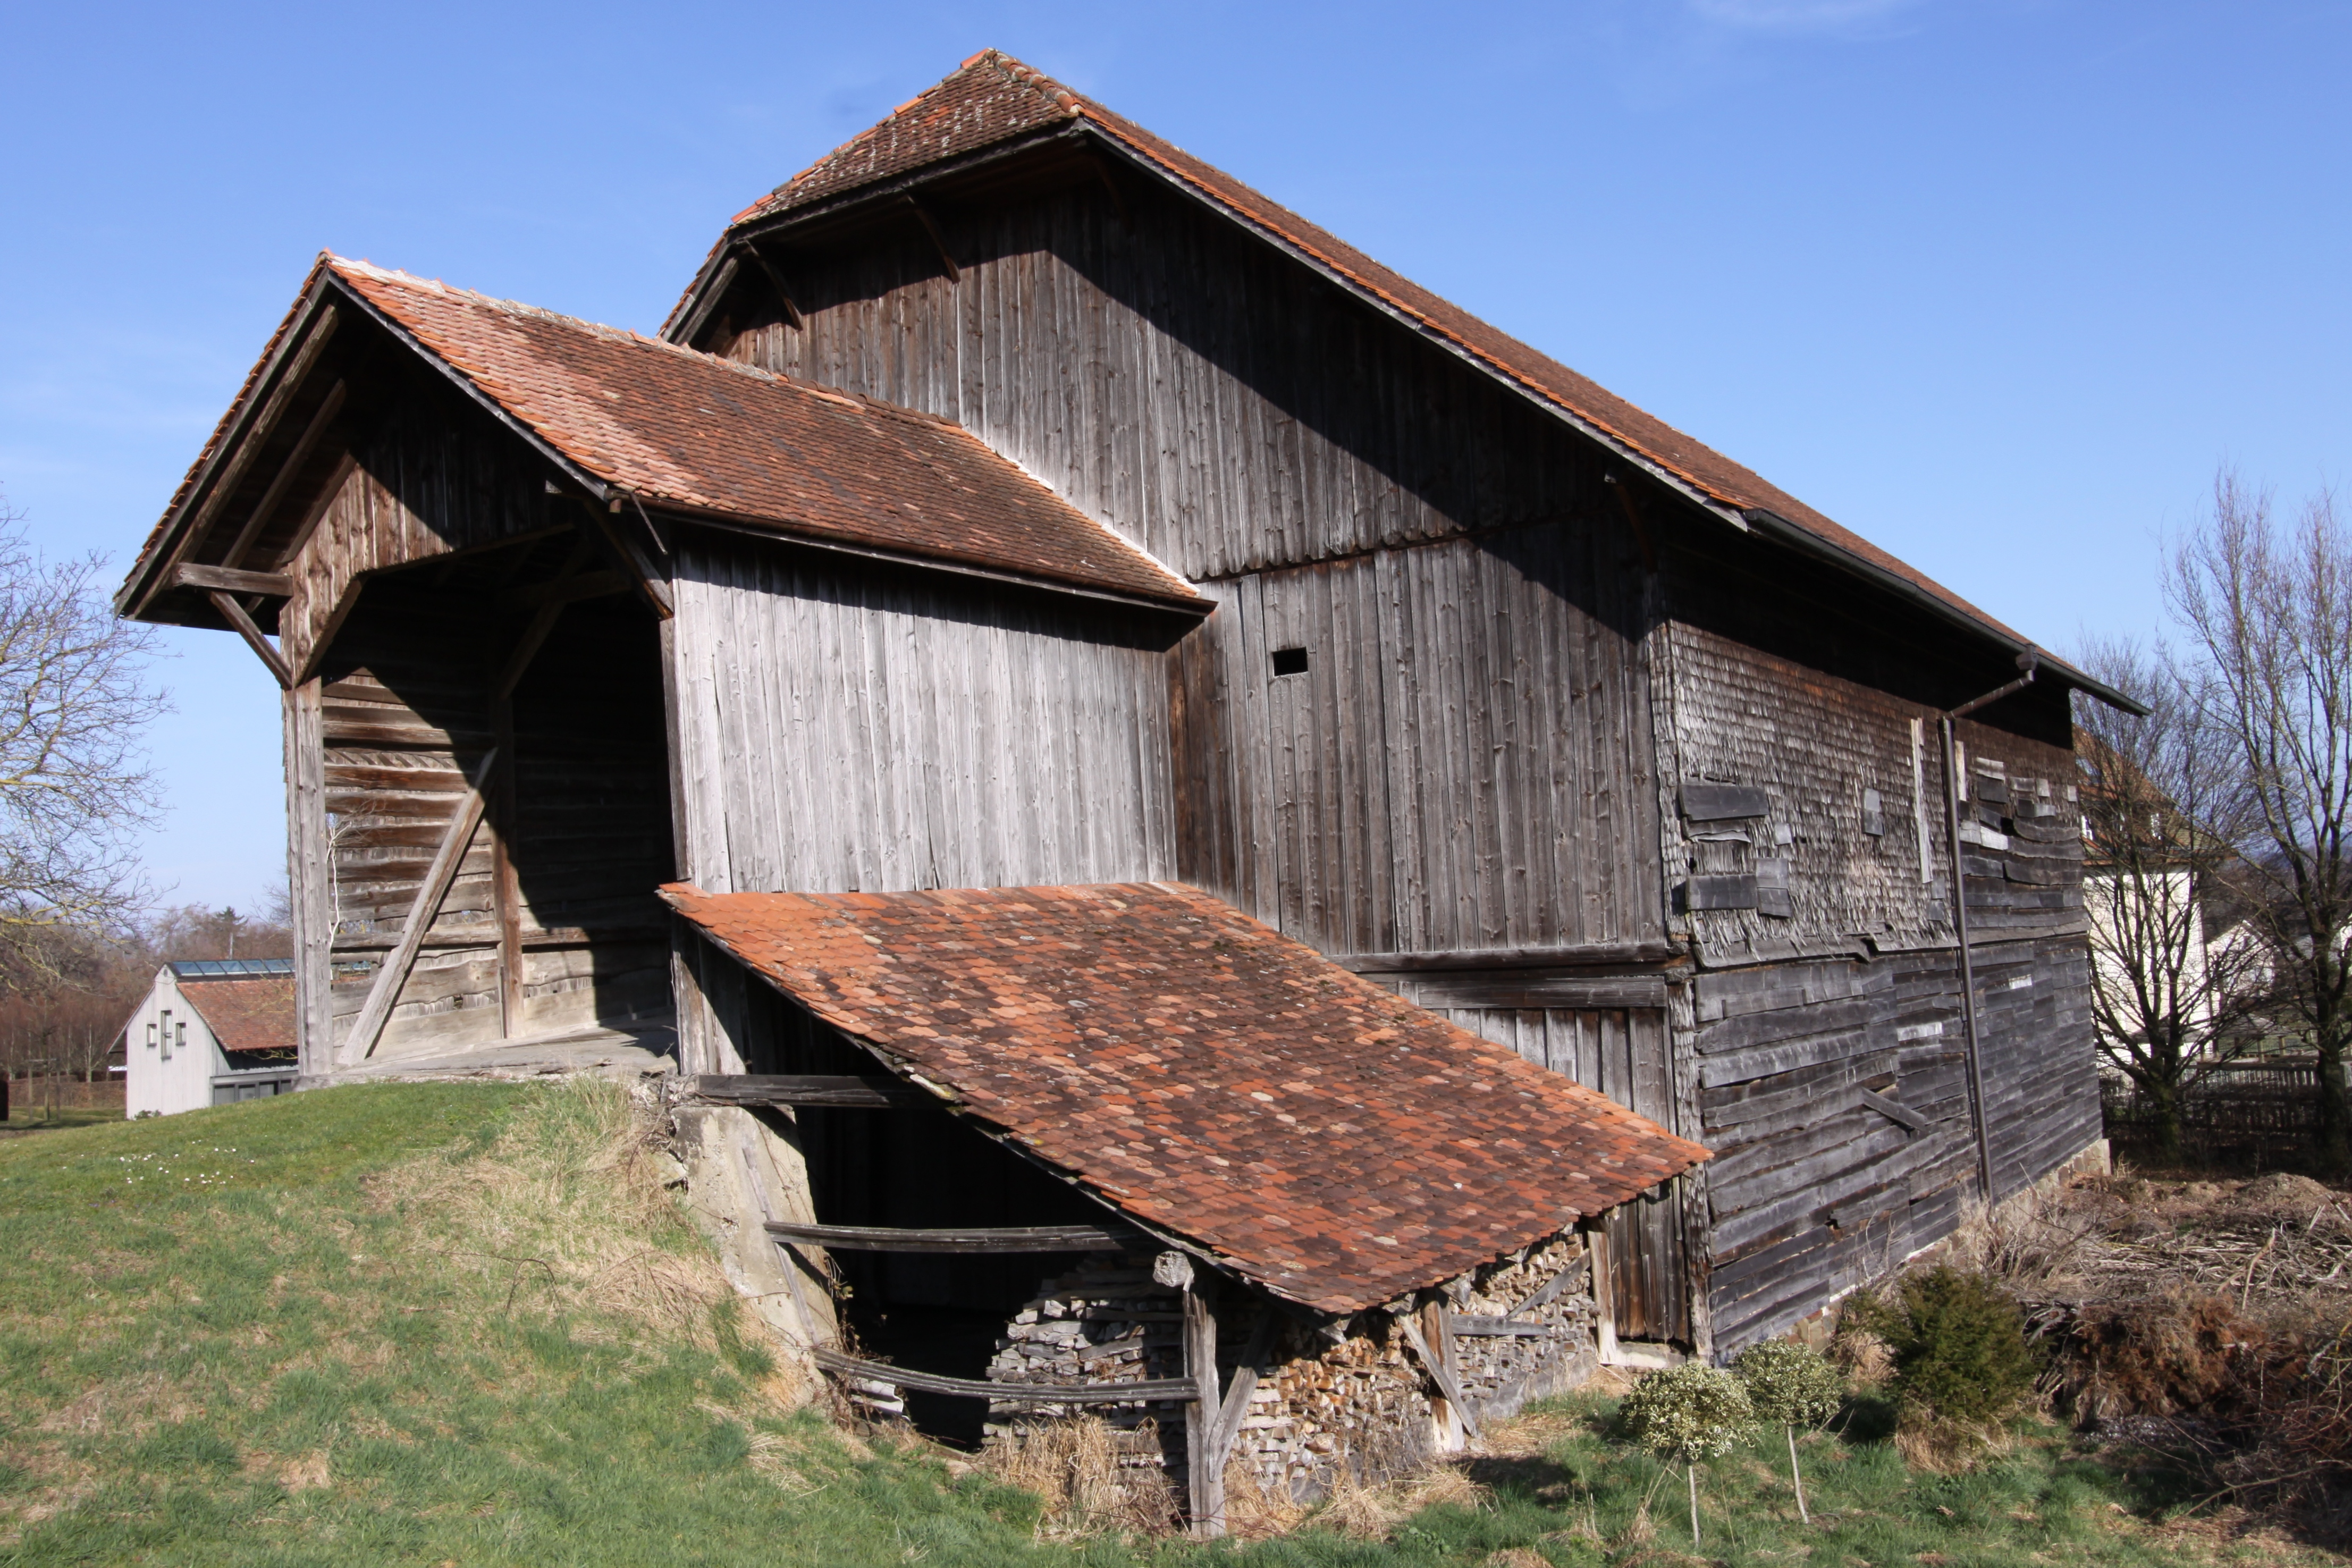 Why Are Barns Painted Black